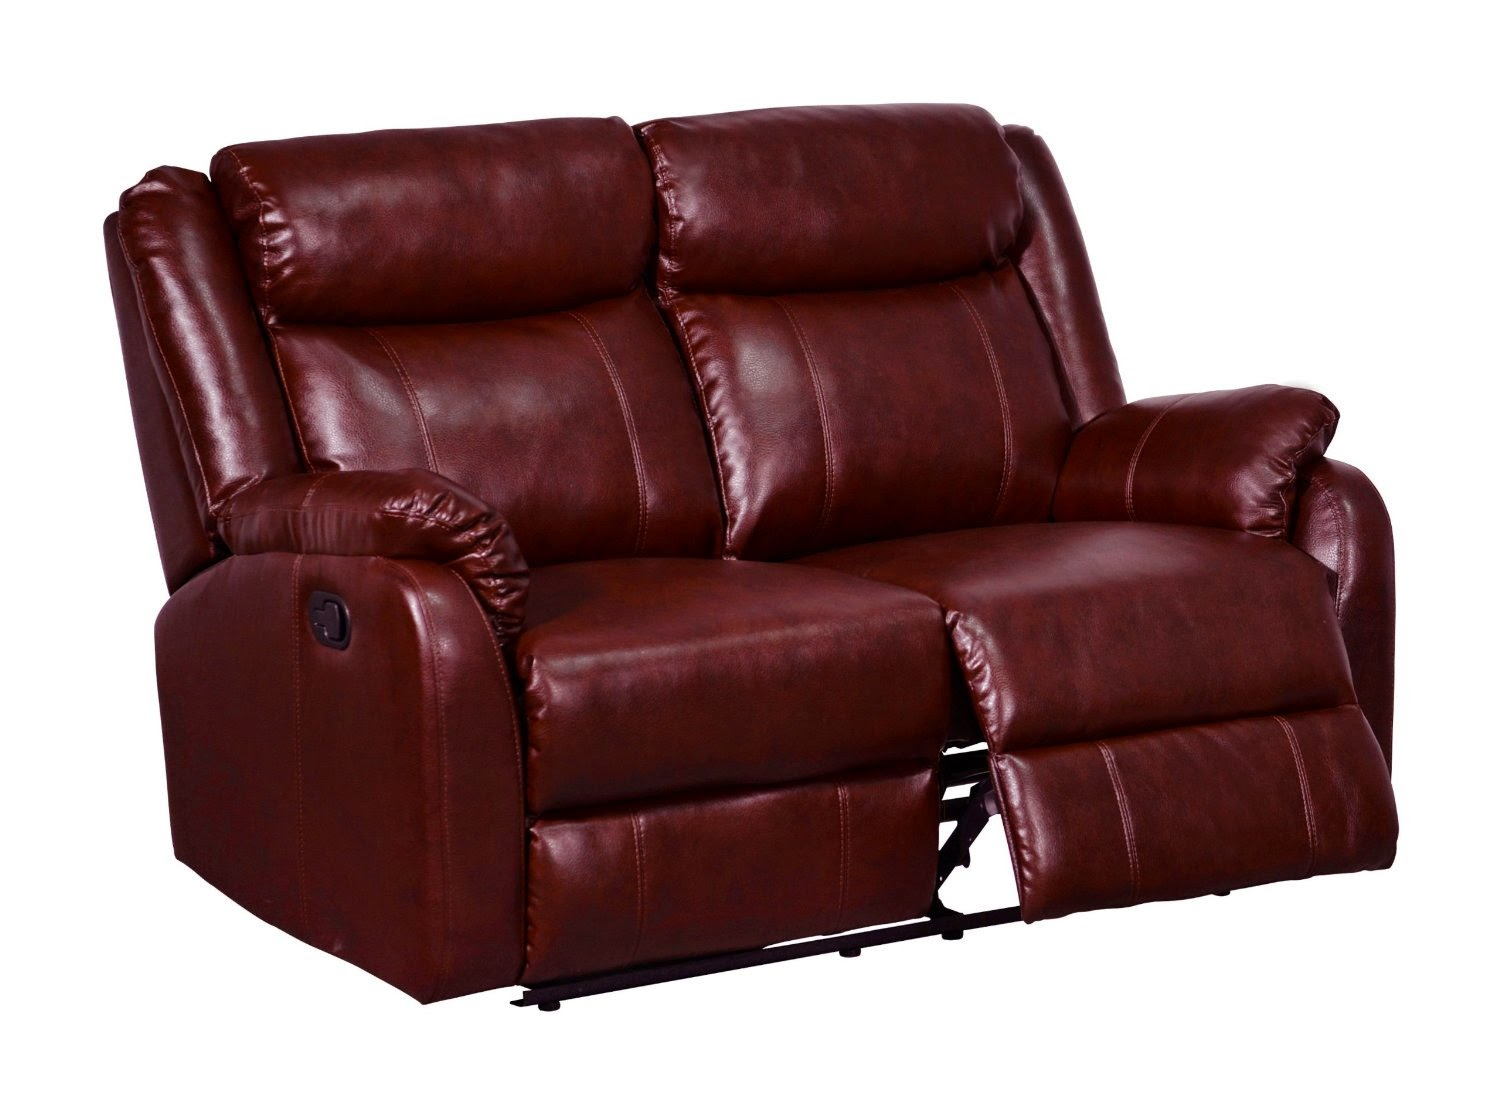 Cheap reclining sofas sale 2 seater leather recliner sofa Reclining leather sofa and loveseat